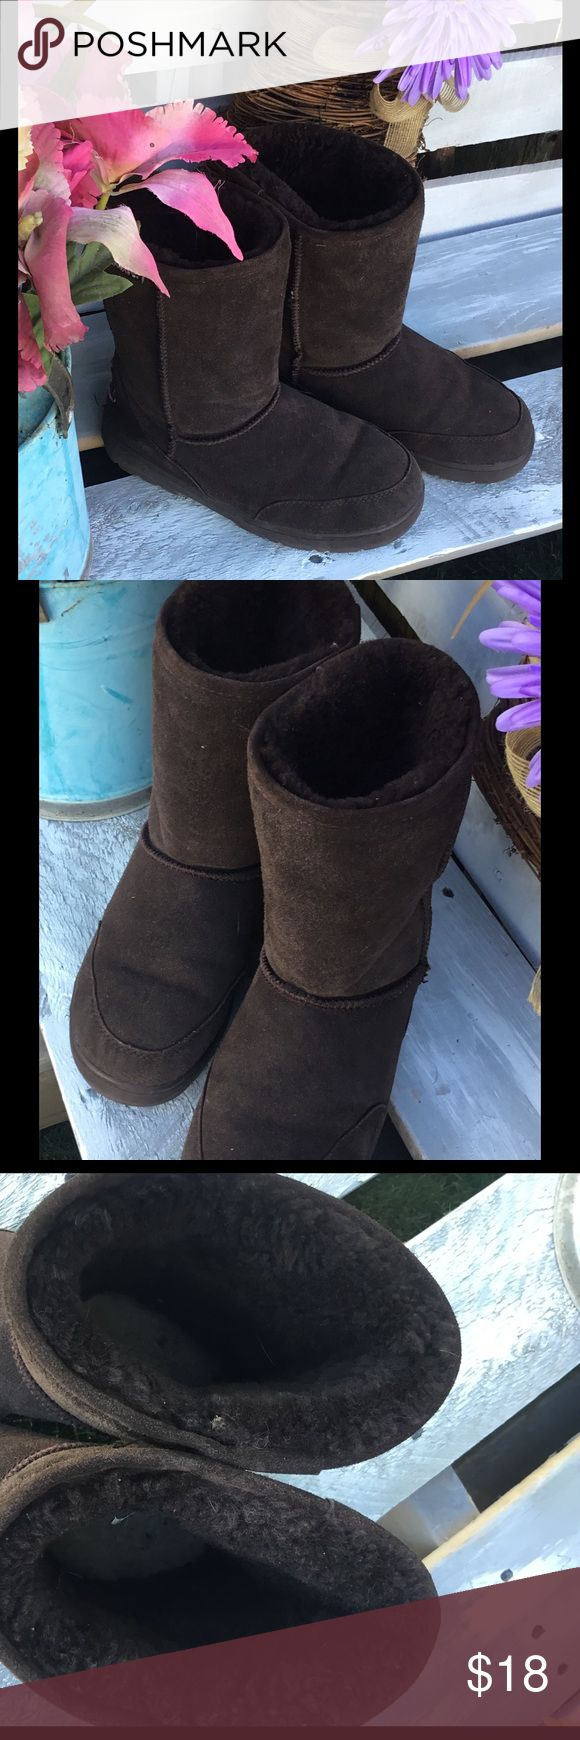 BearPaw Boots ☄️ Unisex Boots in Chocolate Brown ☄️ Gently Used 👌 BearPaw Shoes